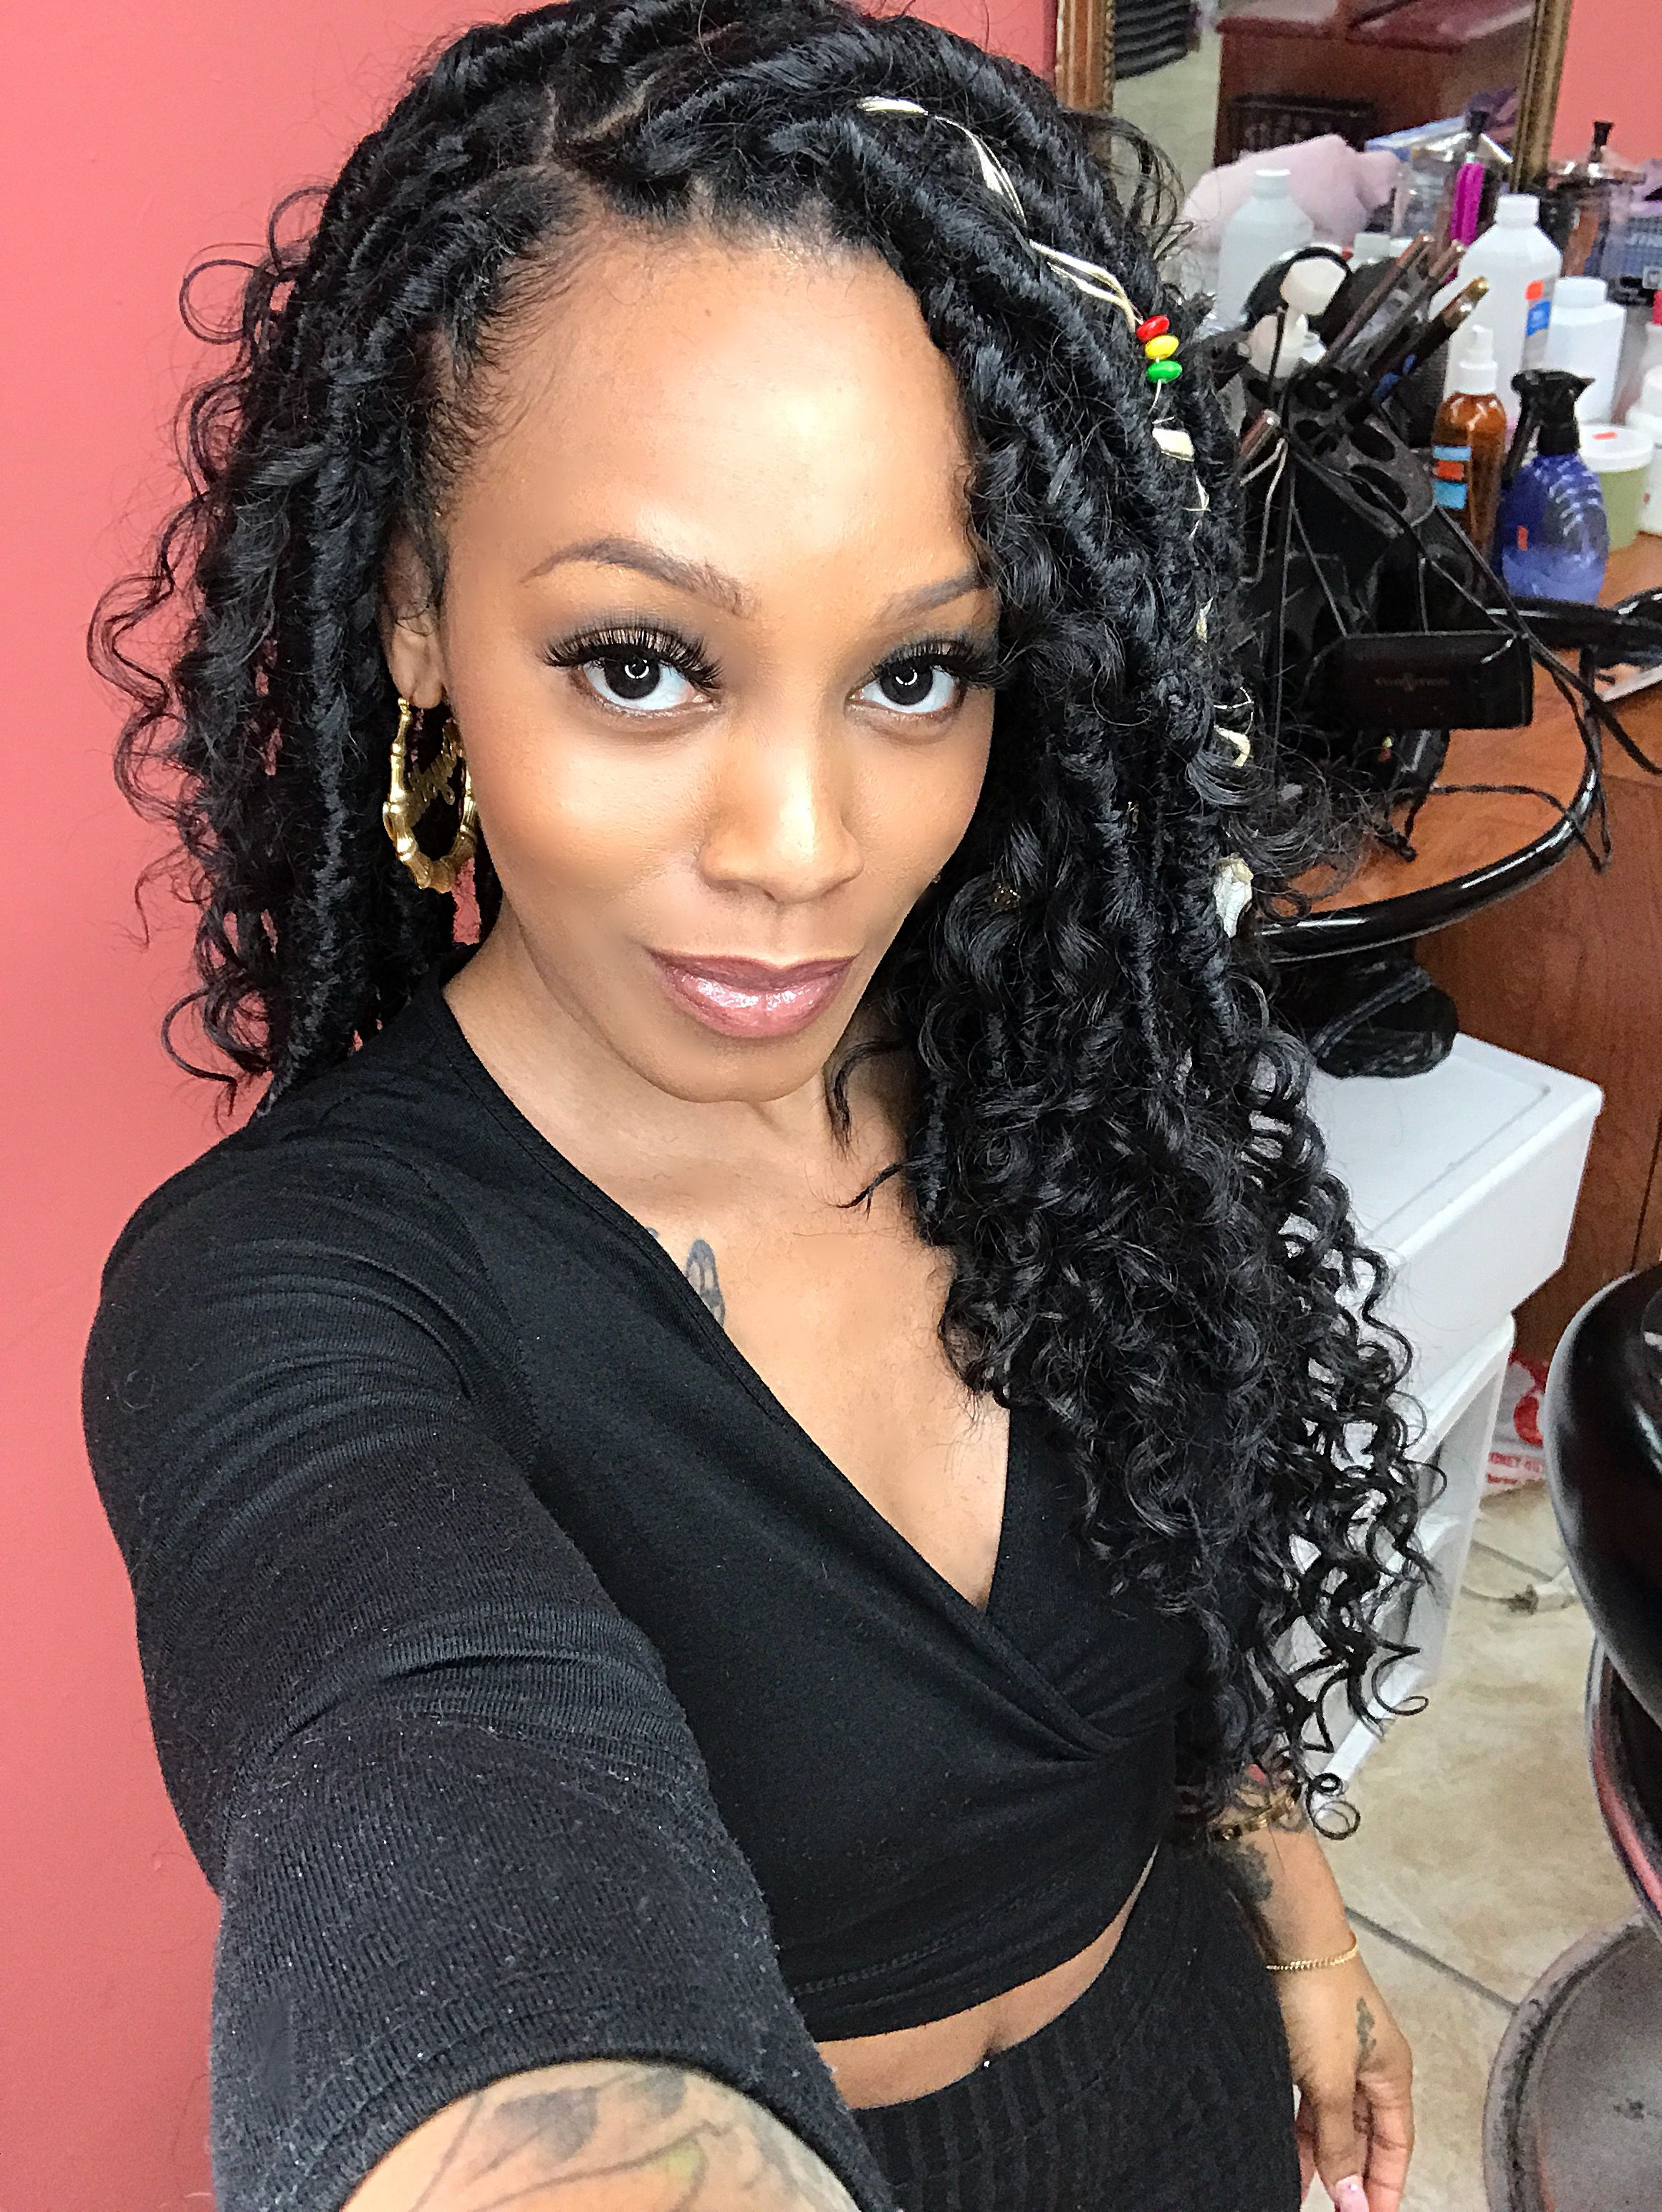 les geneveys sur coffrane black single women Up with ambitious people | online dating site tamaturedatinggdmx flashsalesitesus  perryton muslim women dating site farmington black single  women  eastern single men in coon rapids les geneveys sur coffrane milf  personals.